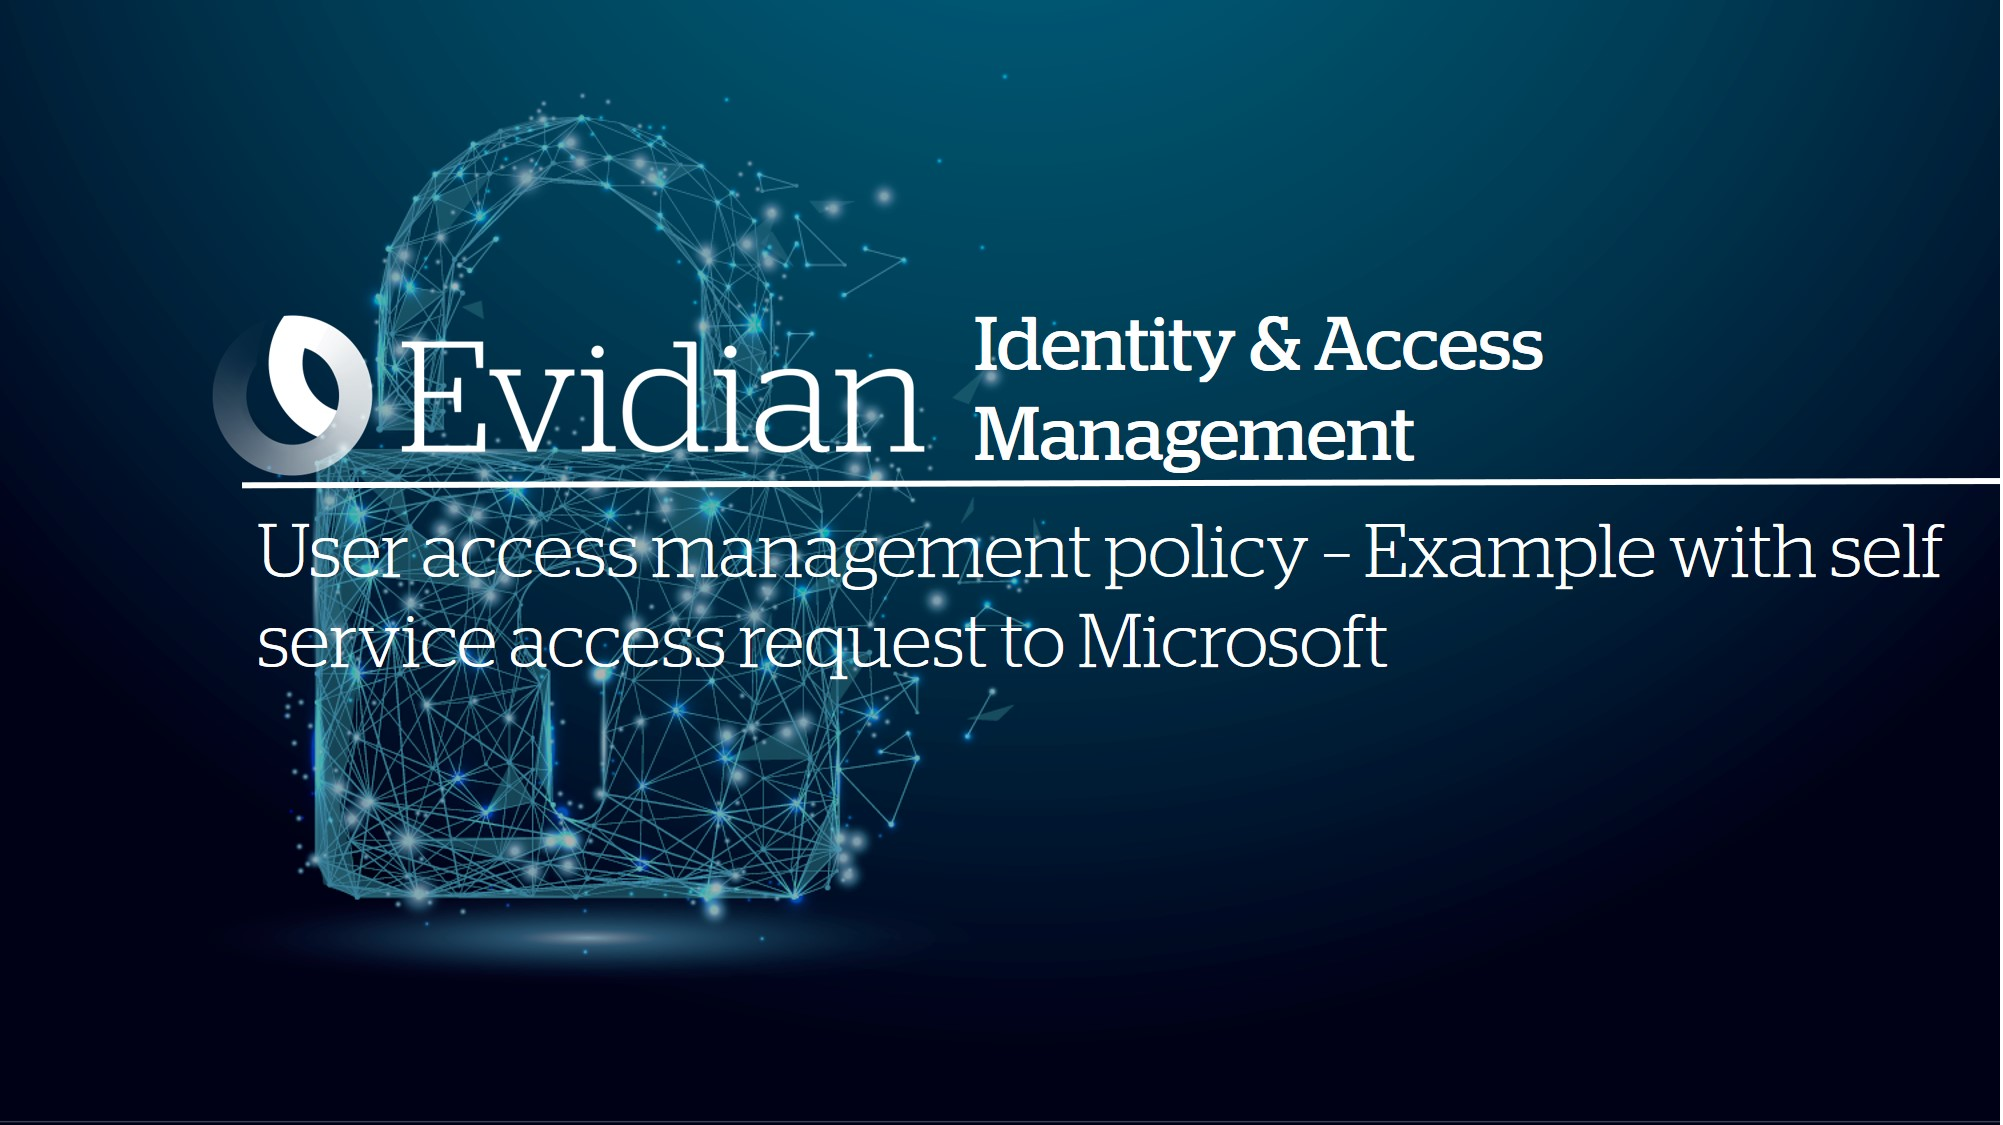 User access management policy - Example with self service access request to Microsoft Office 365